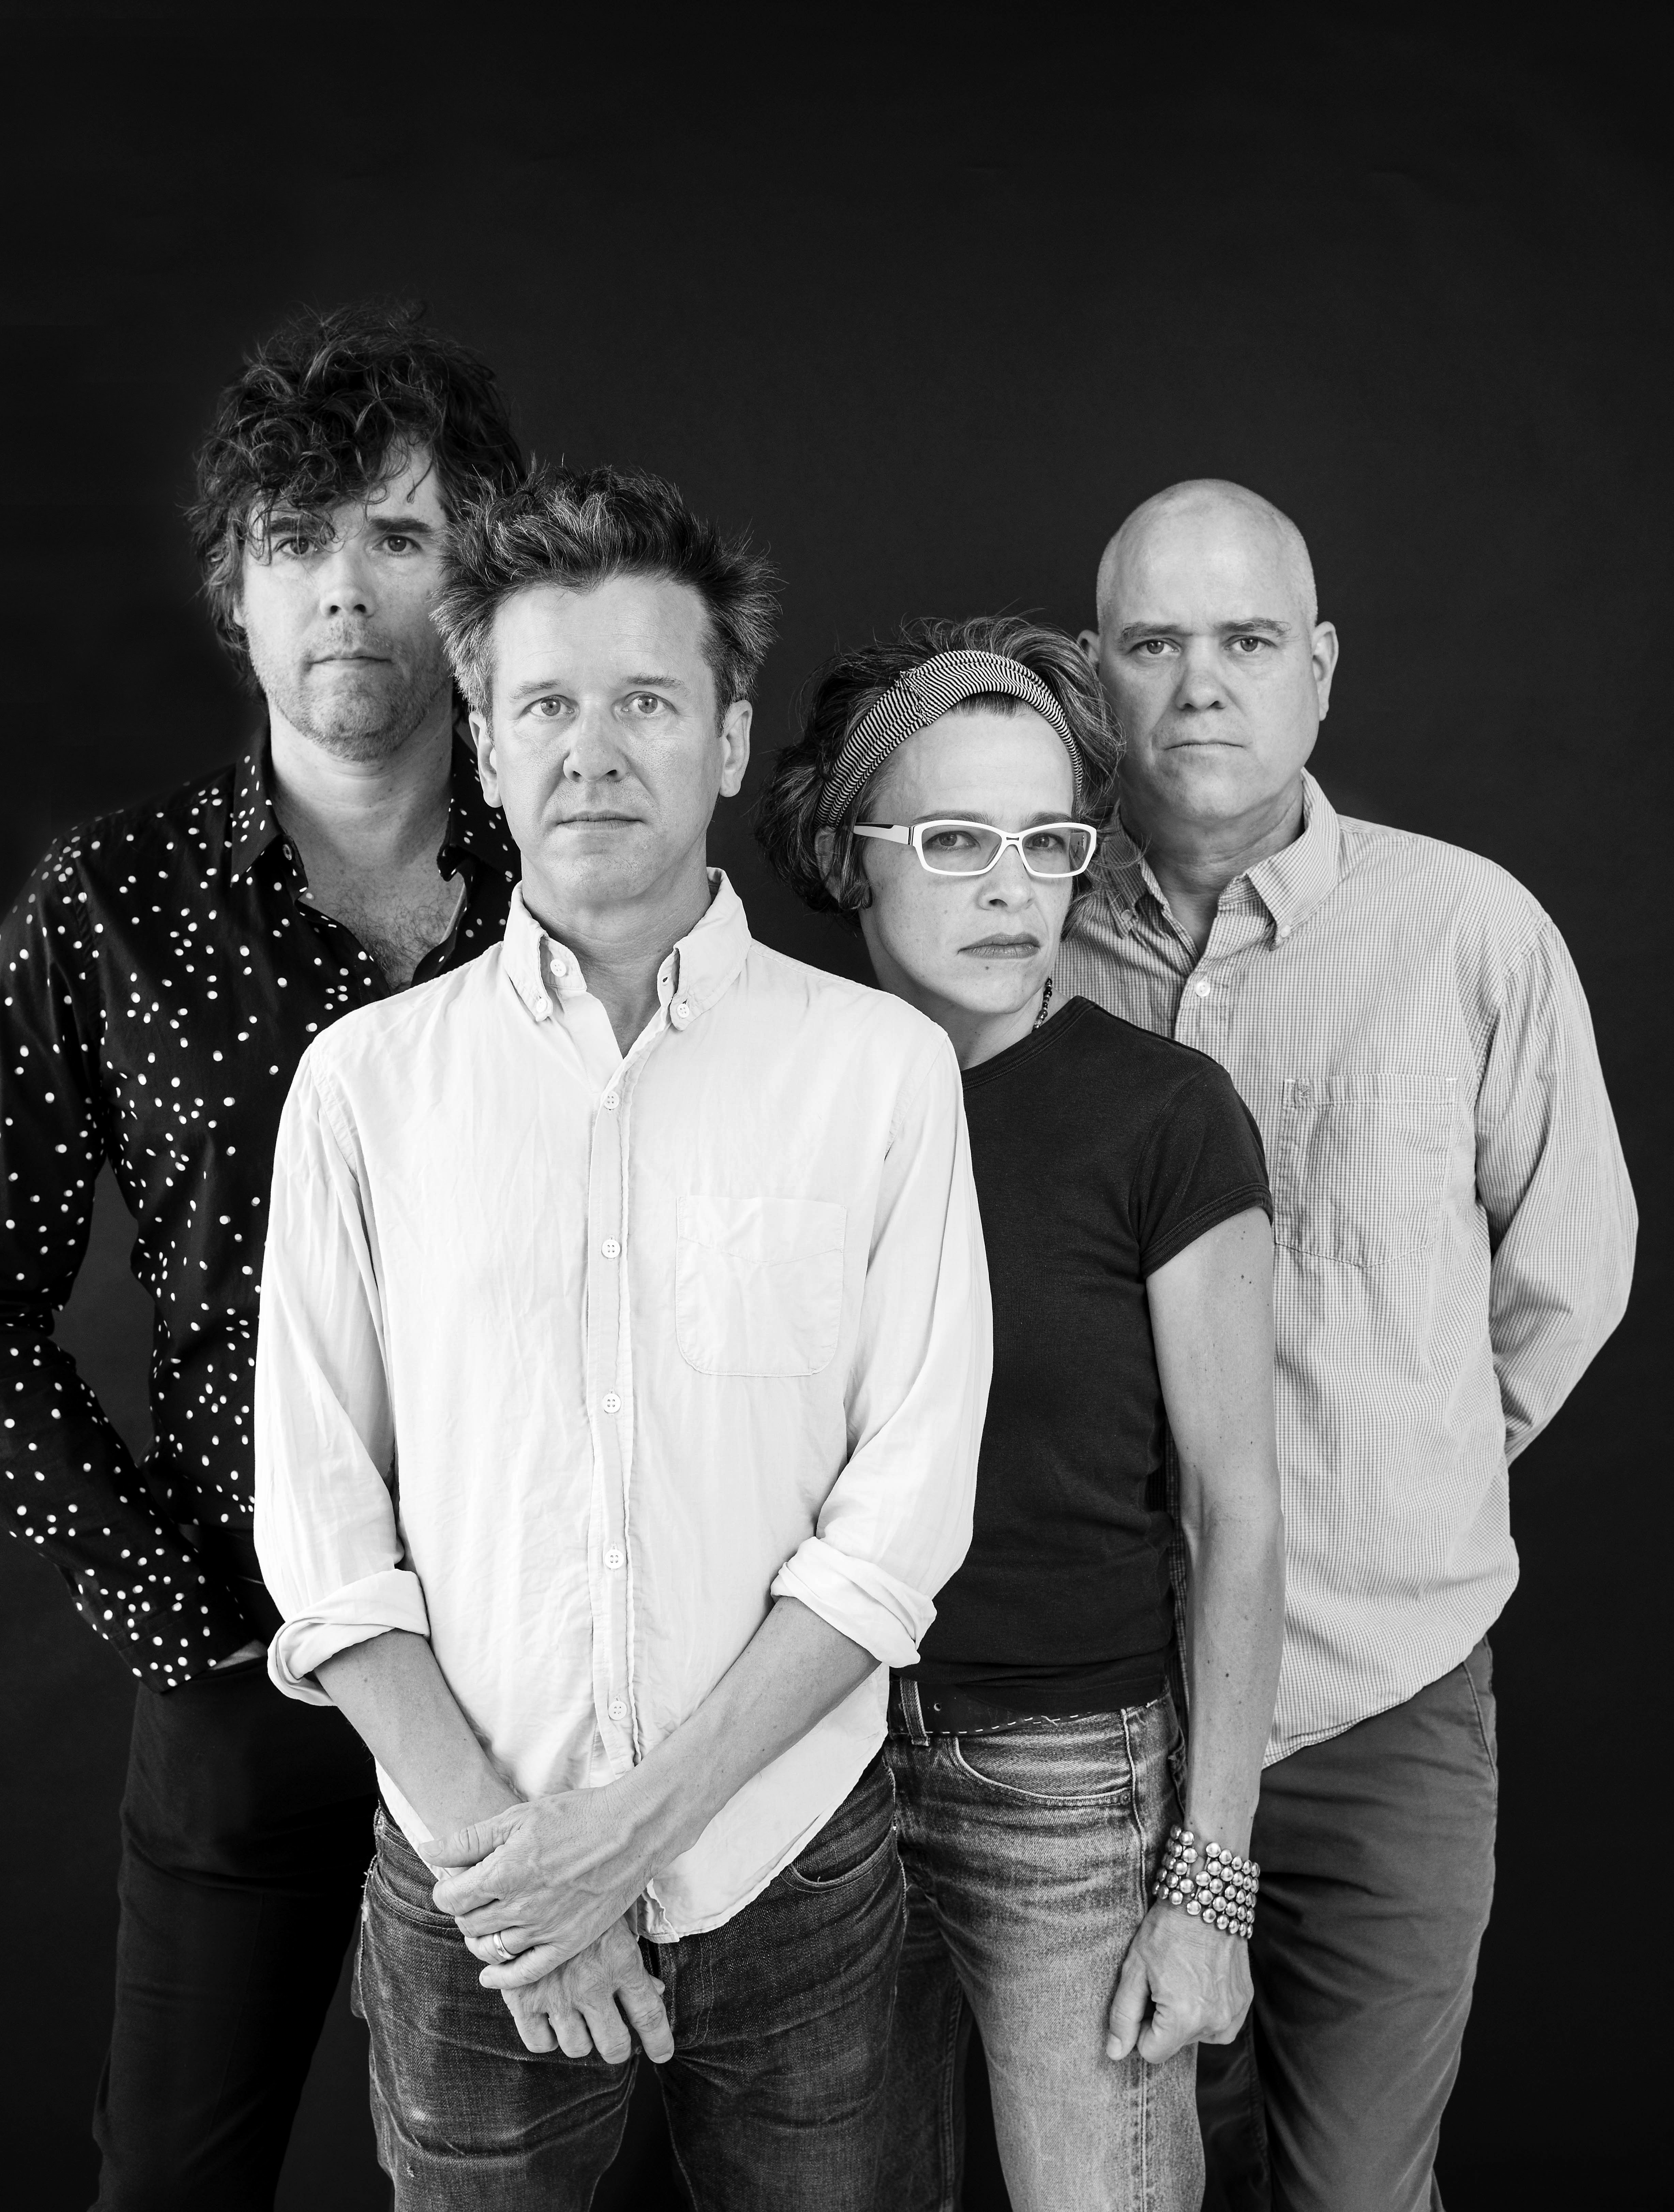 Superchunk release new 7-inch benefit single